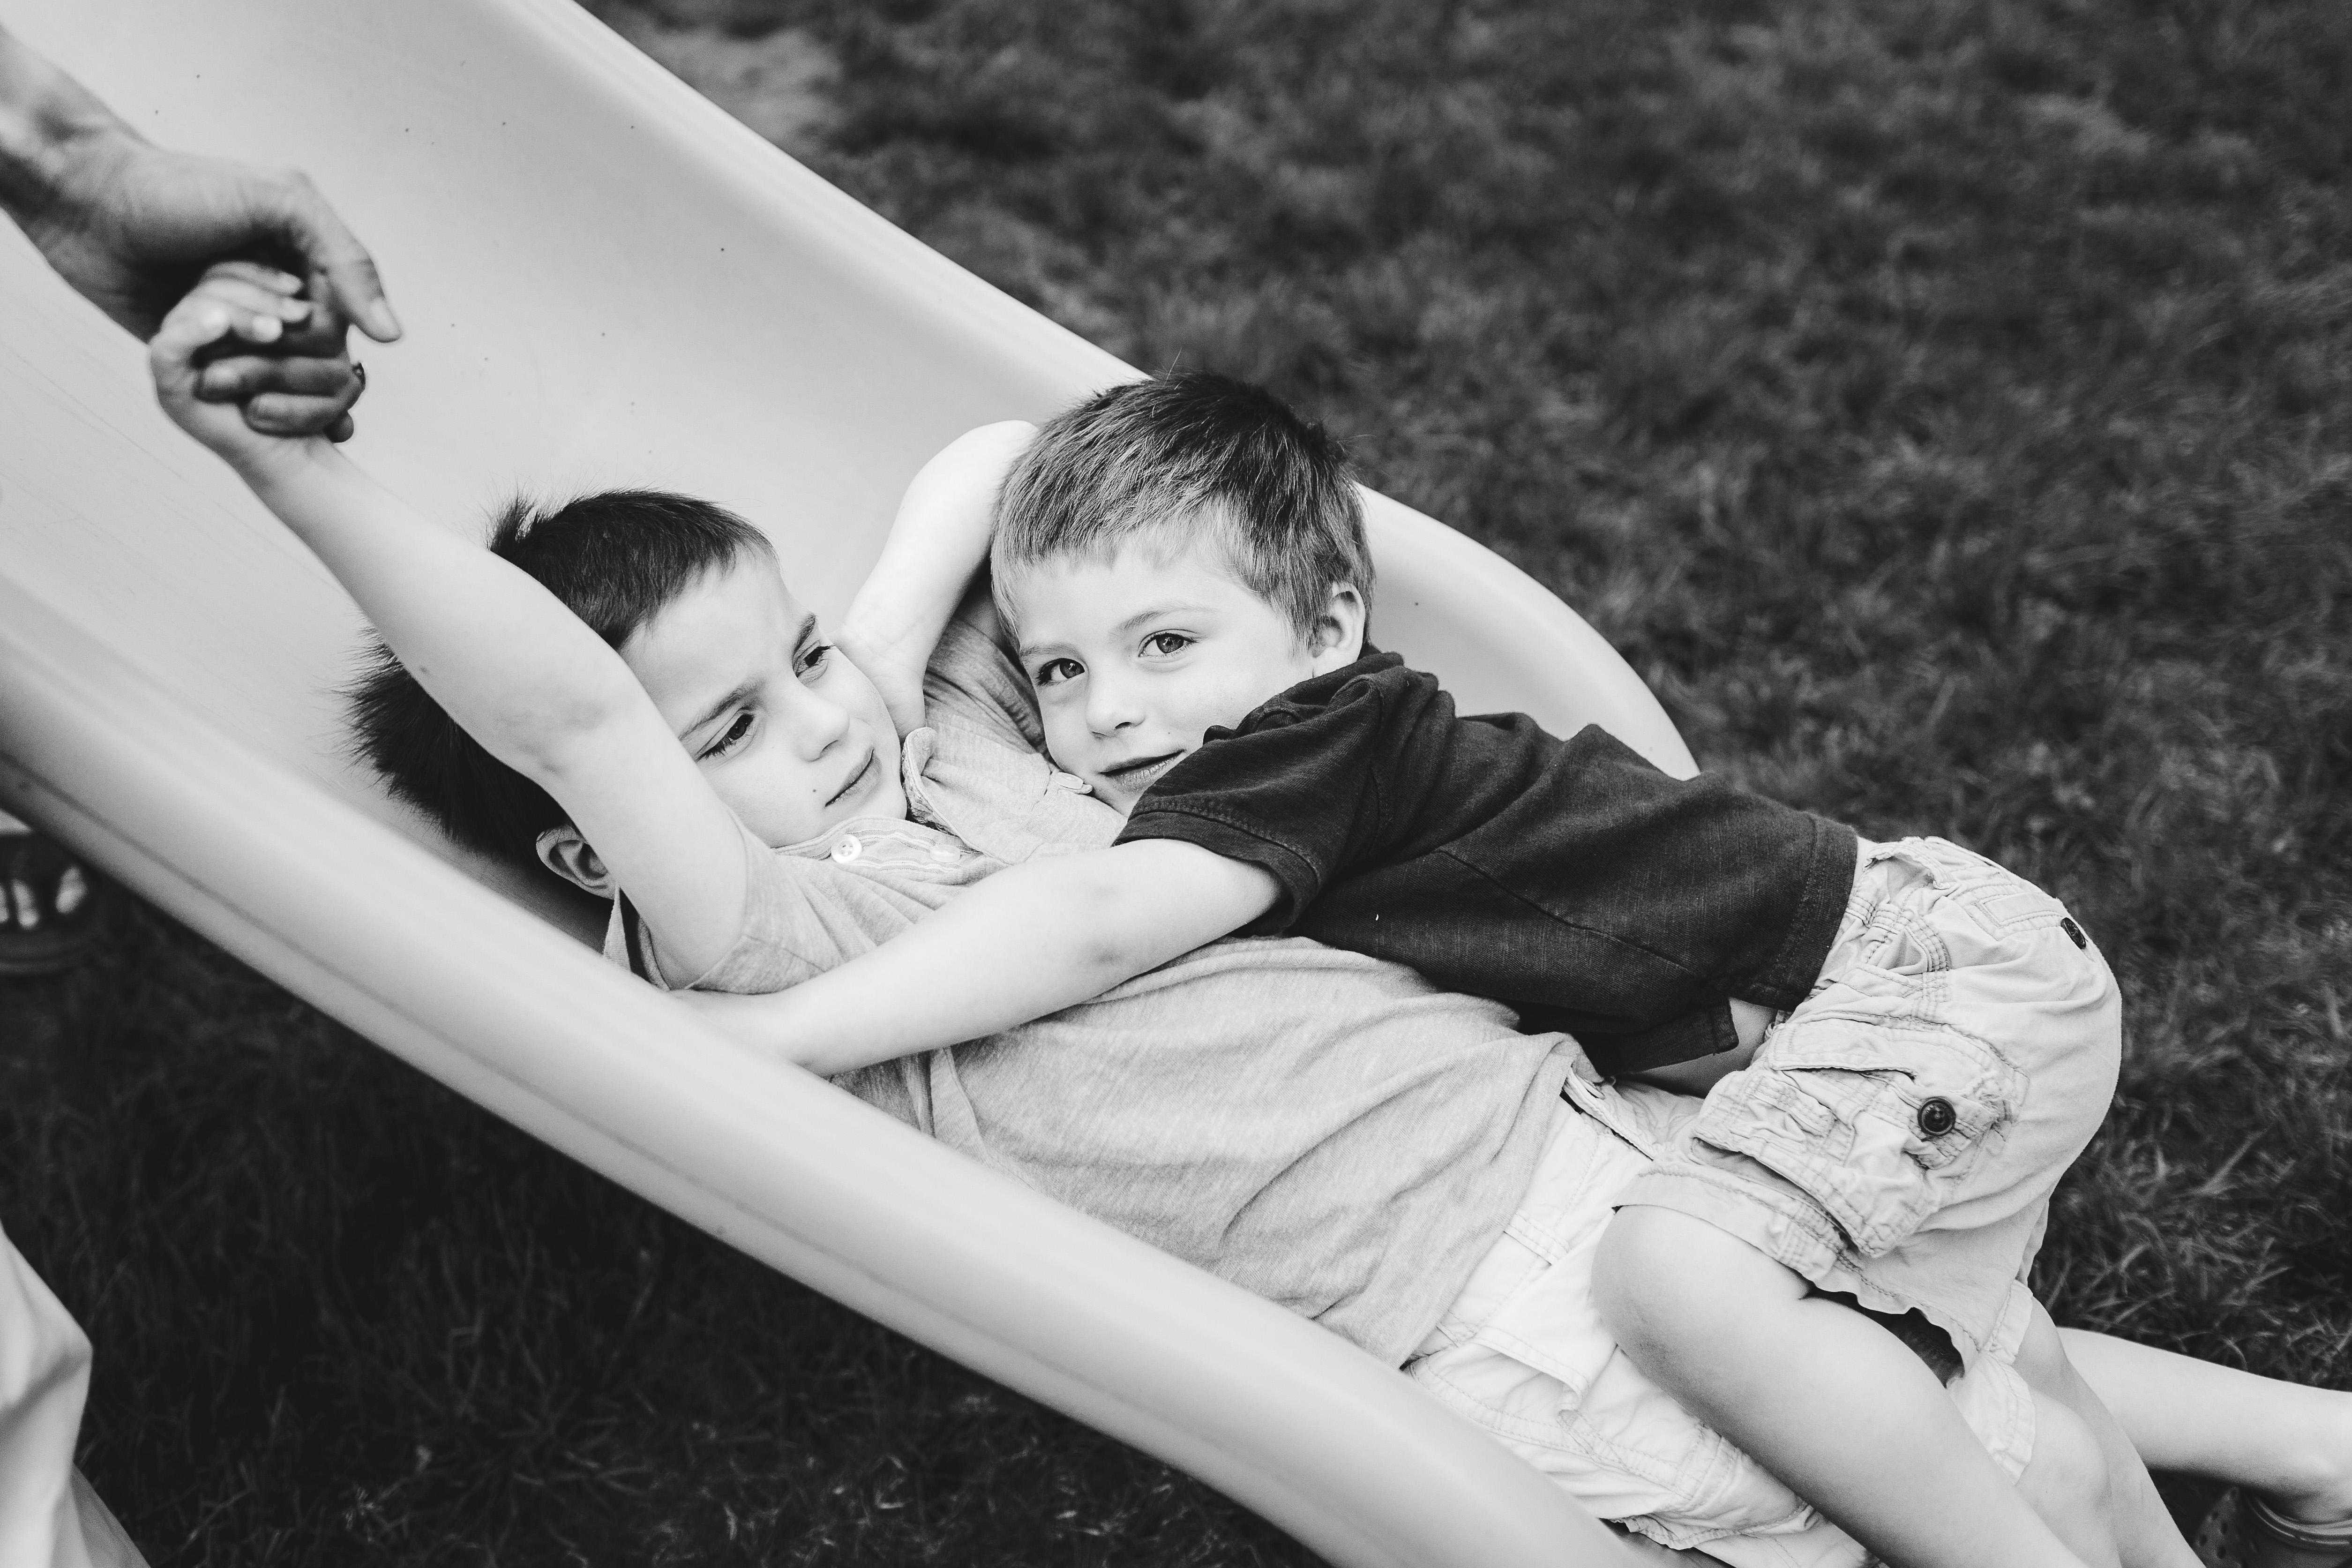 brothers hugging on slide one holding dad's hand